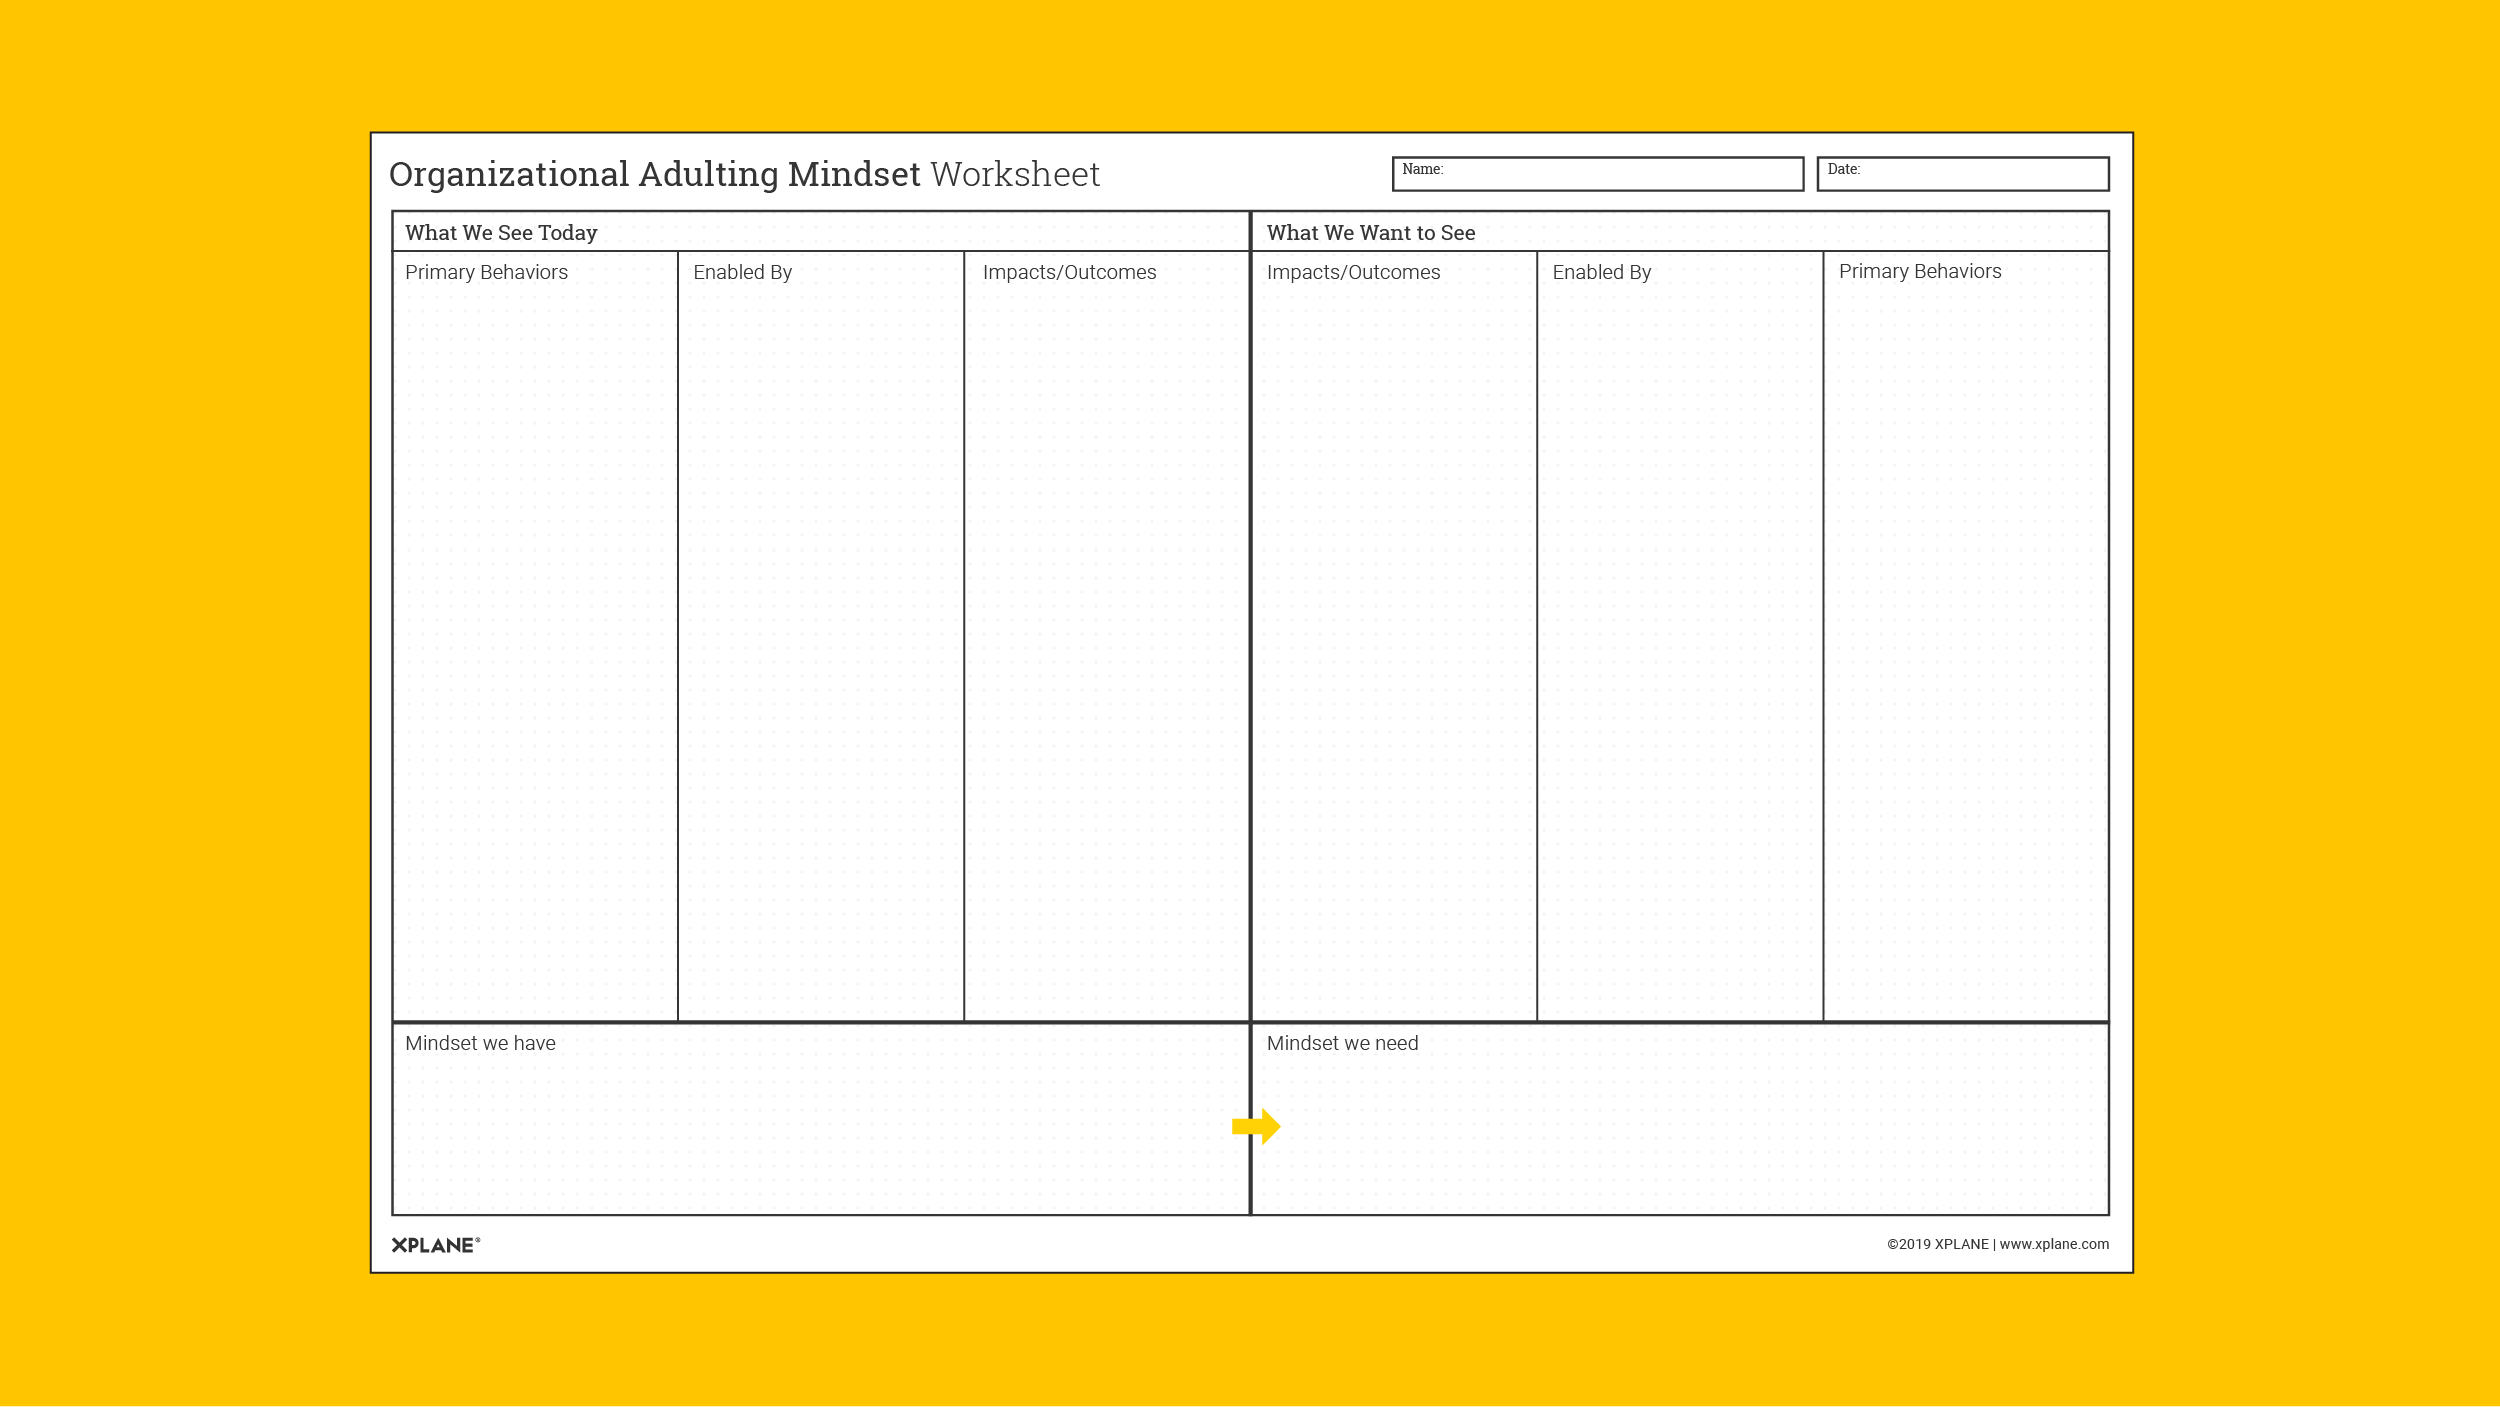 Organizational Adulting Mindset Worksheet